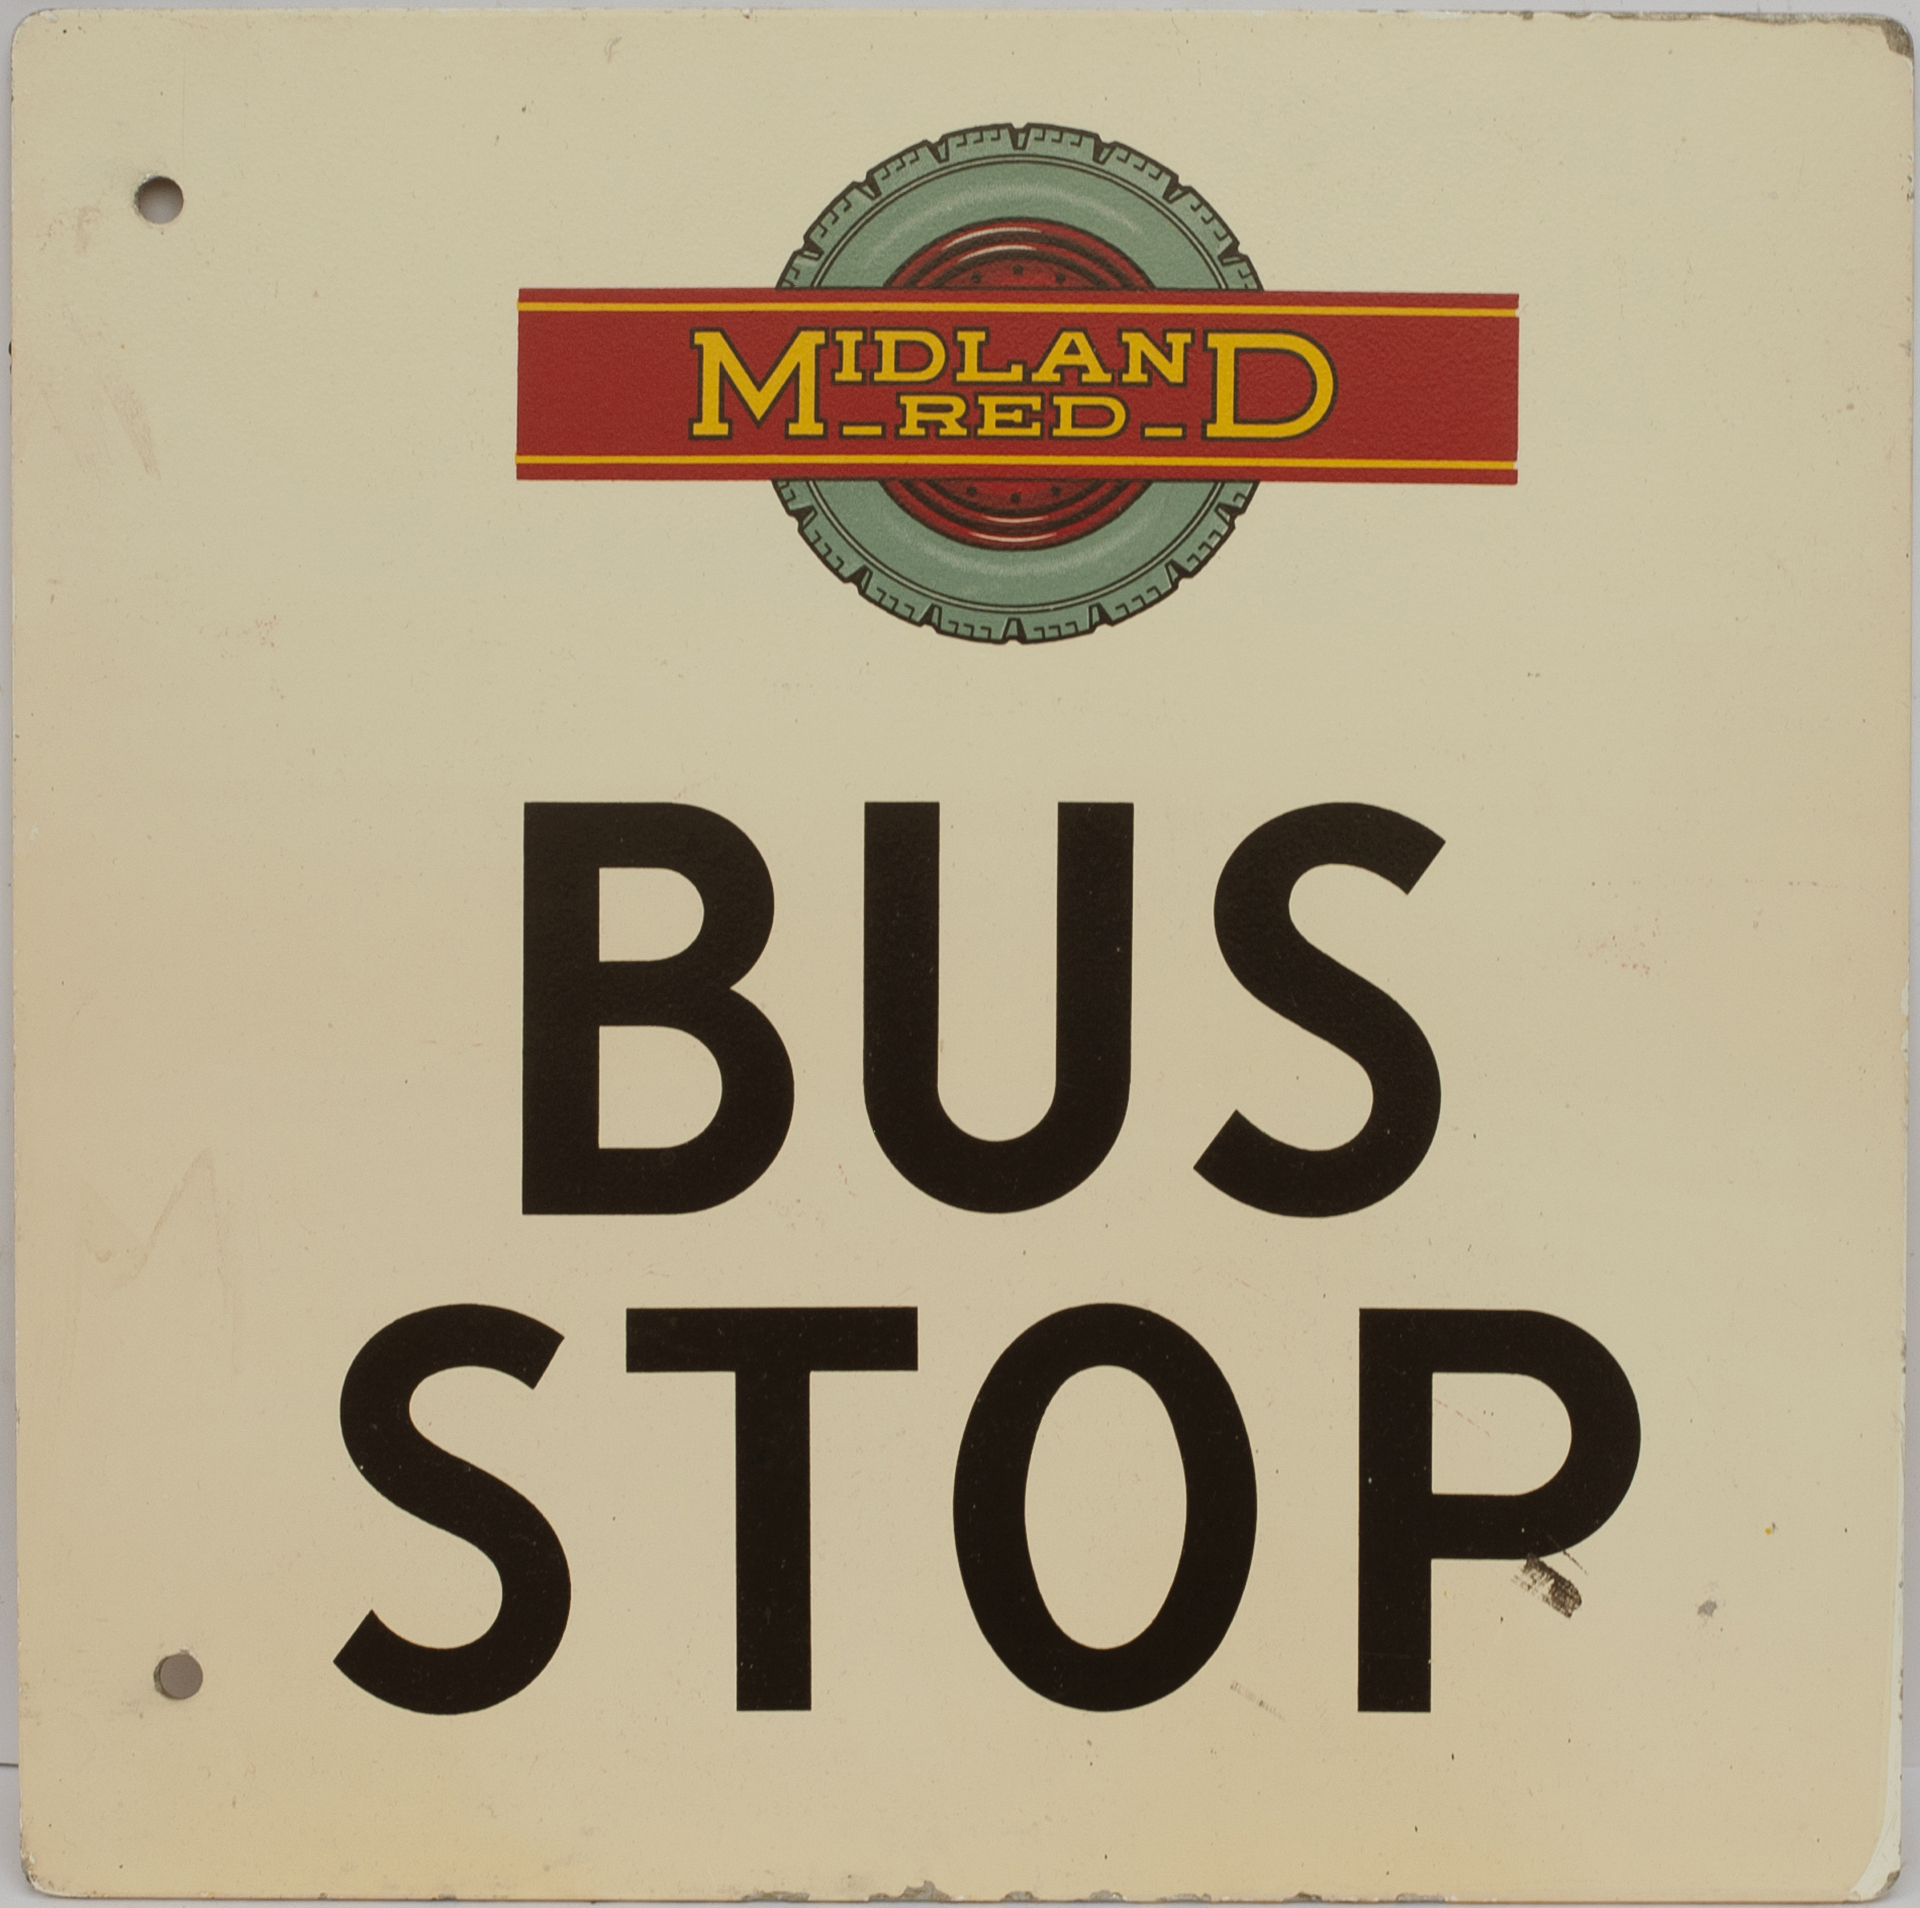 Bus Motoring Sign MIDLAND RED BUS STOP. Double